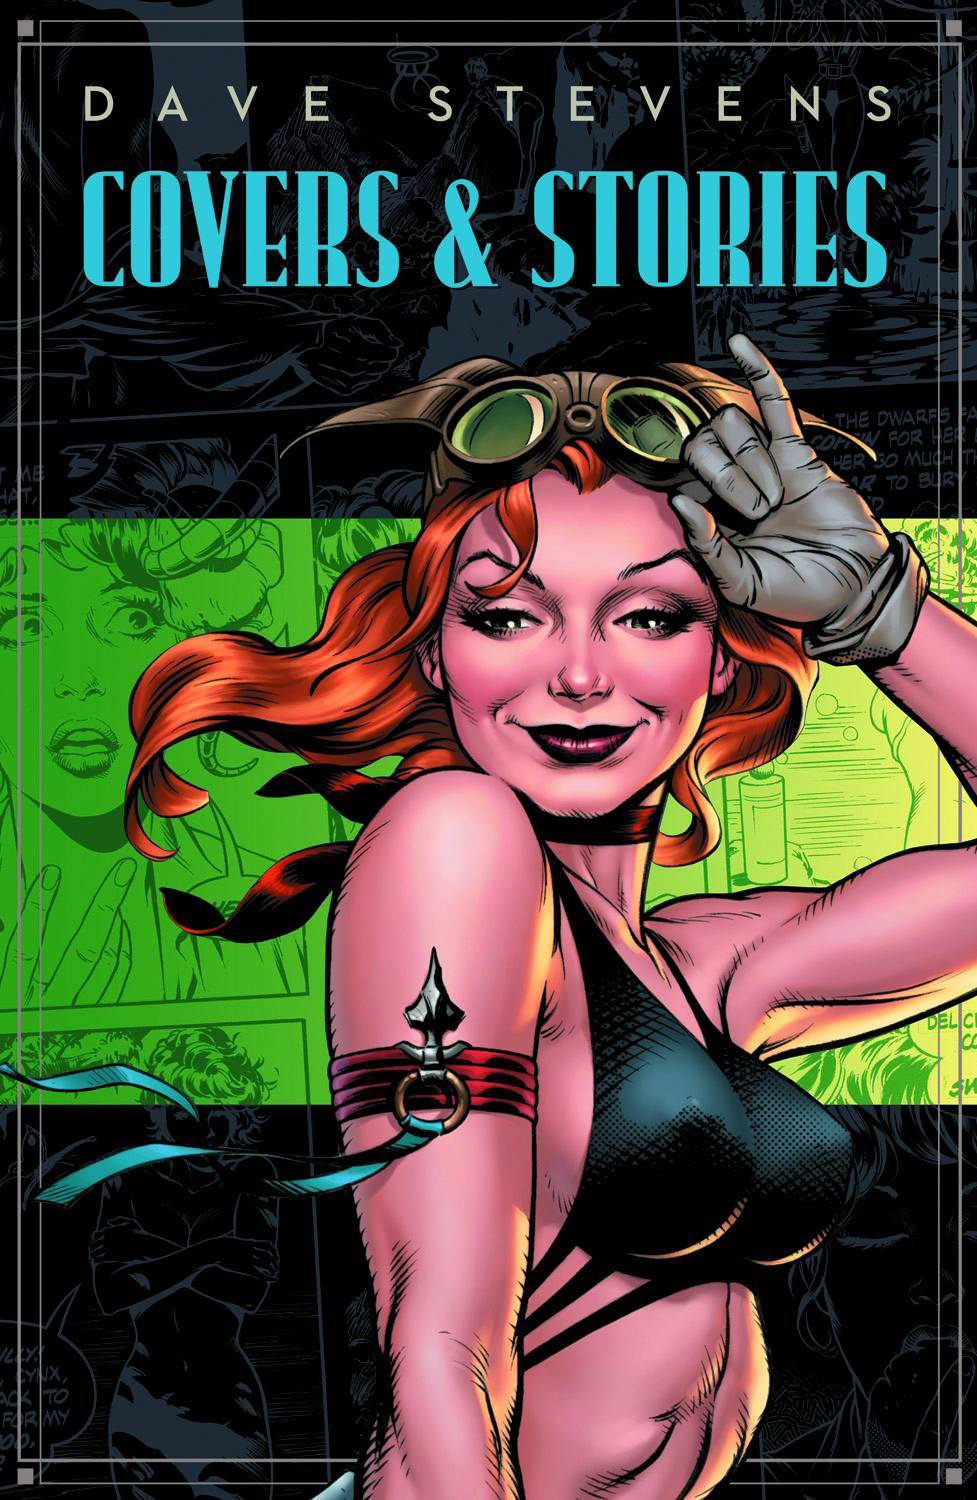 DAVE STEVENS STORIES & COVERS HC SDCC 2012 VAR